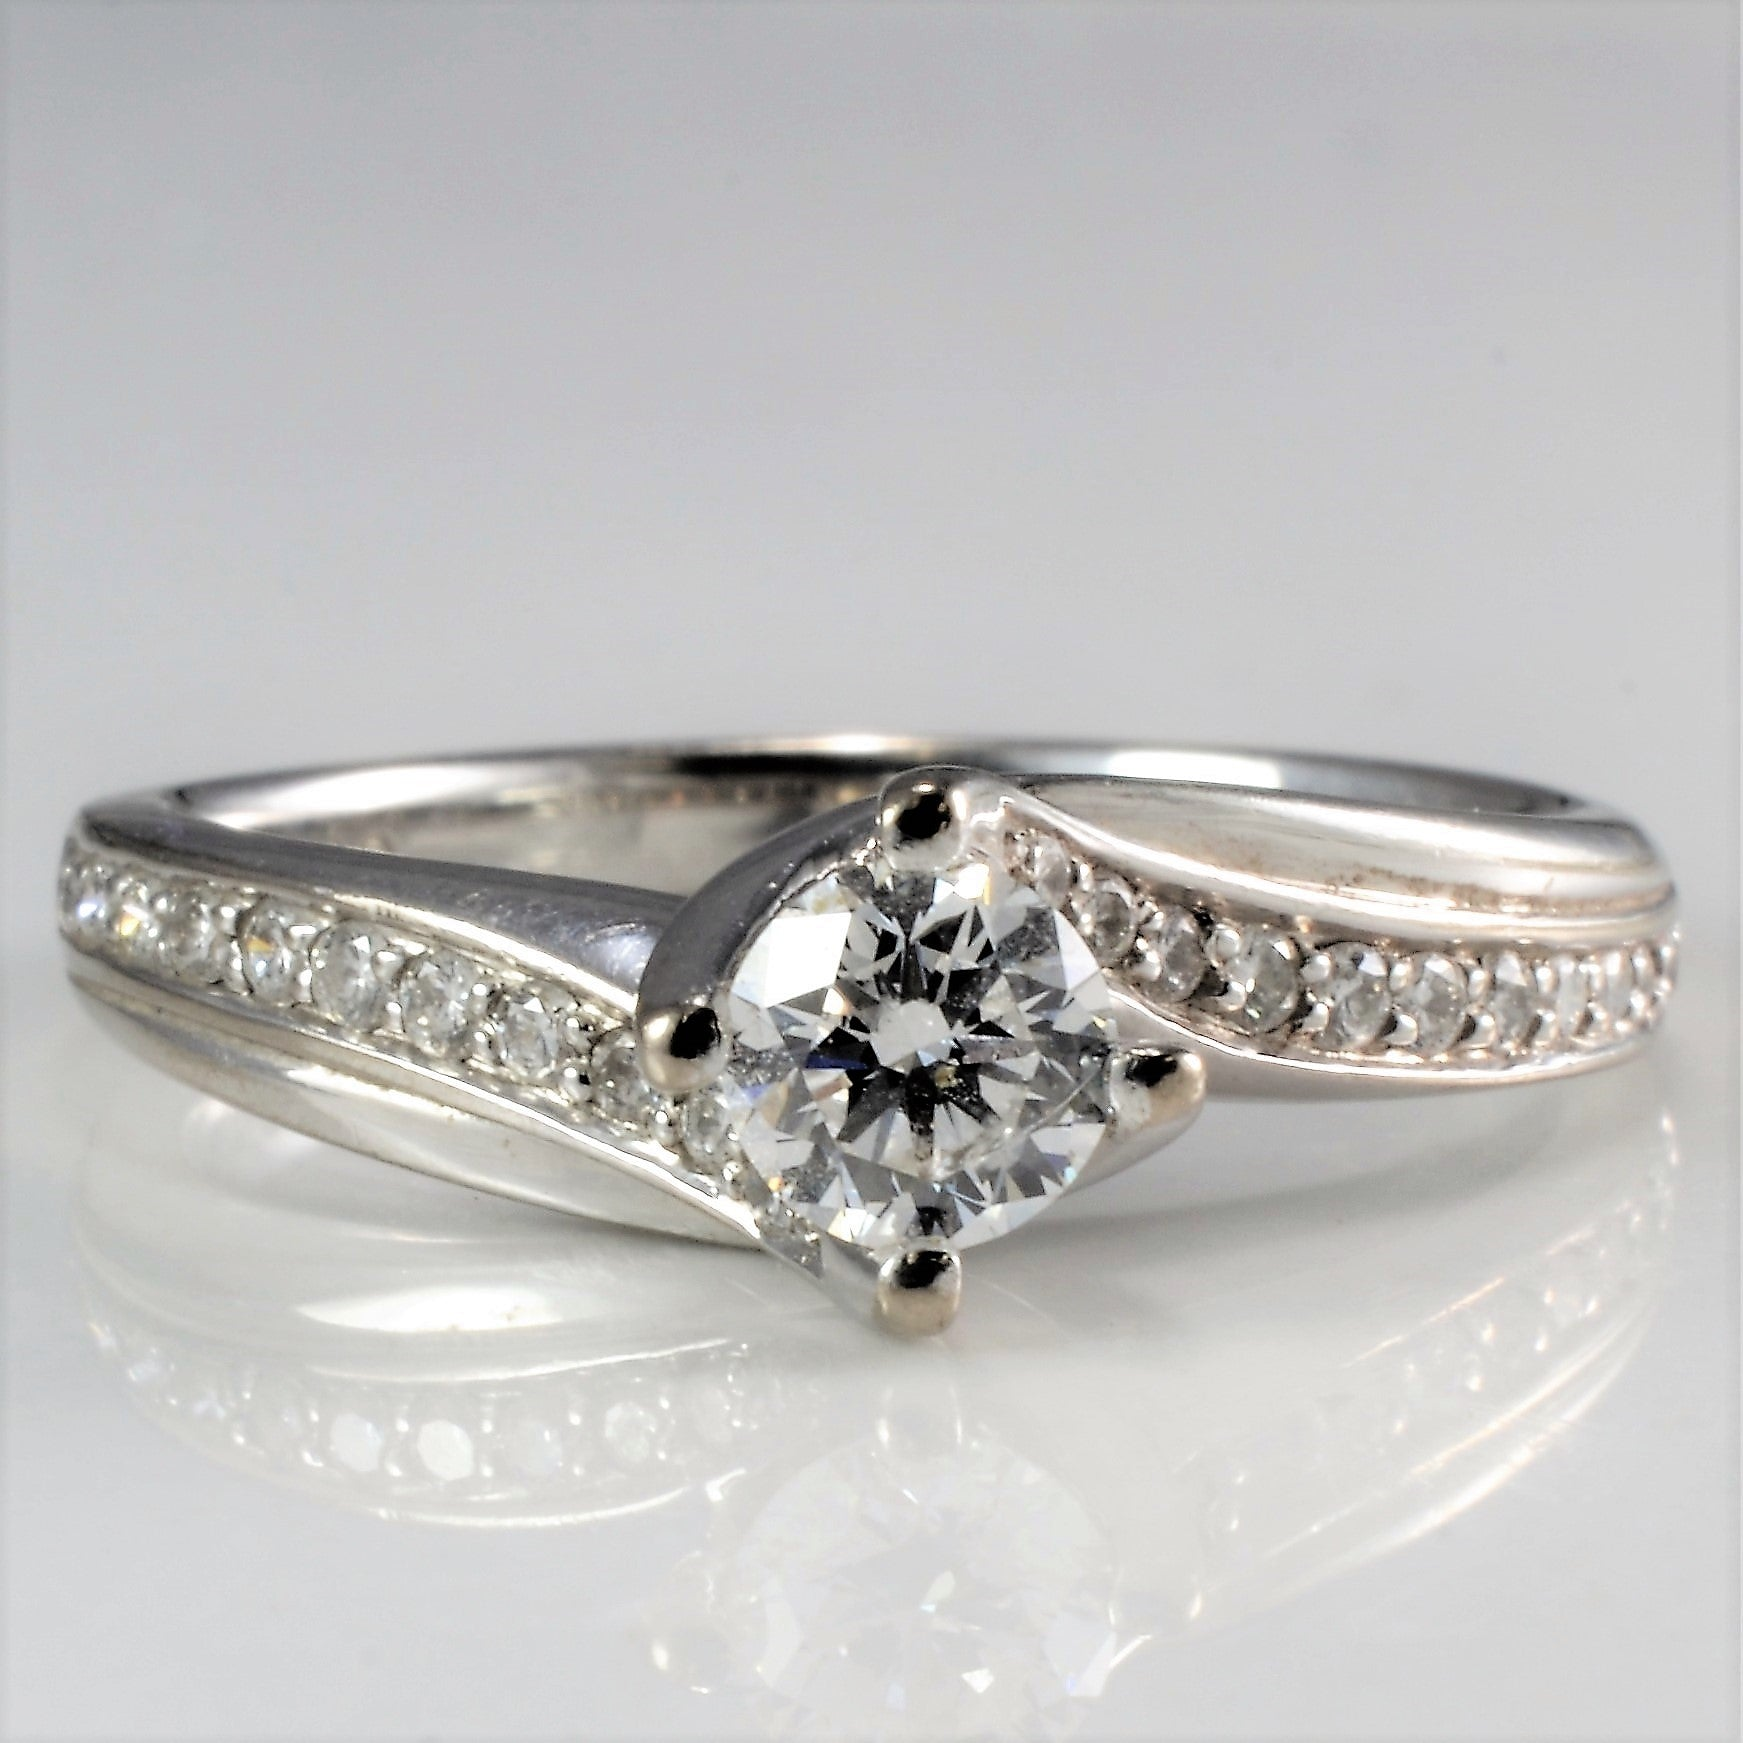 Bypass Diamond Engagement Ring | 0.55 ctw, SZ 6.75 |